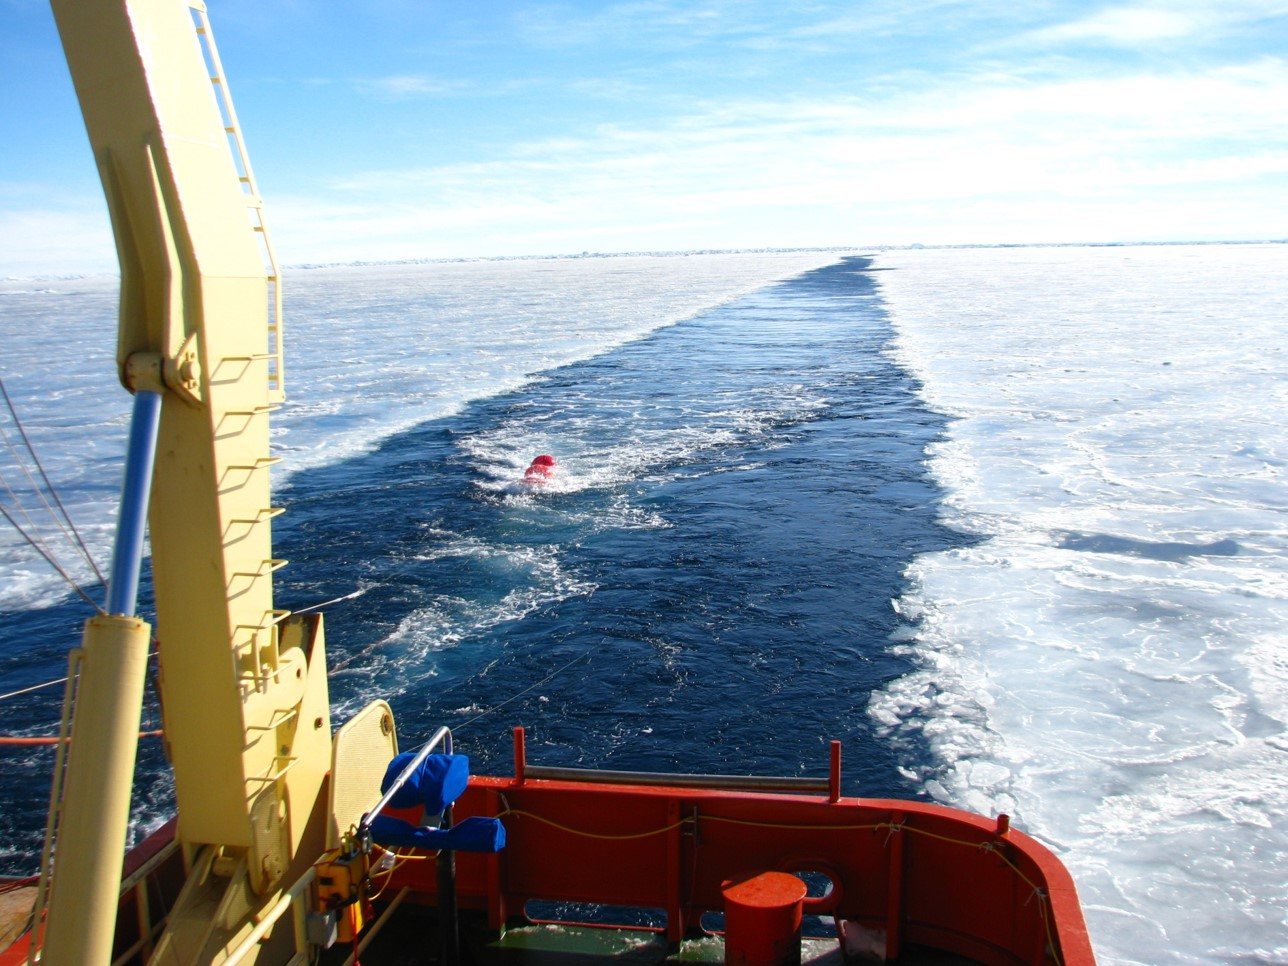 The East Antarctic Ice Sheet stores more water than any other ice sheet and holds enough water to raise sea levels by an estimated 174 feet.